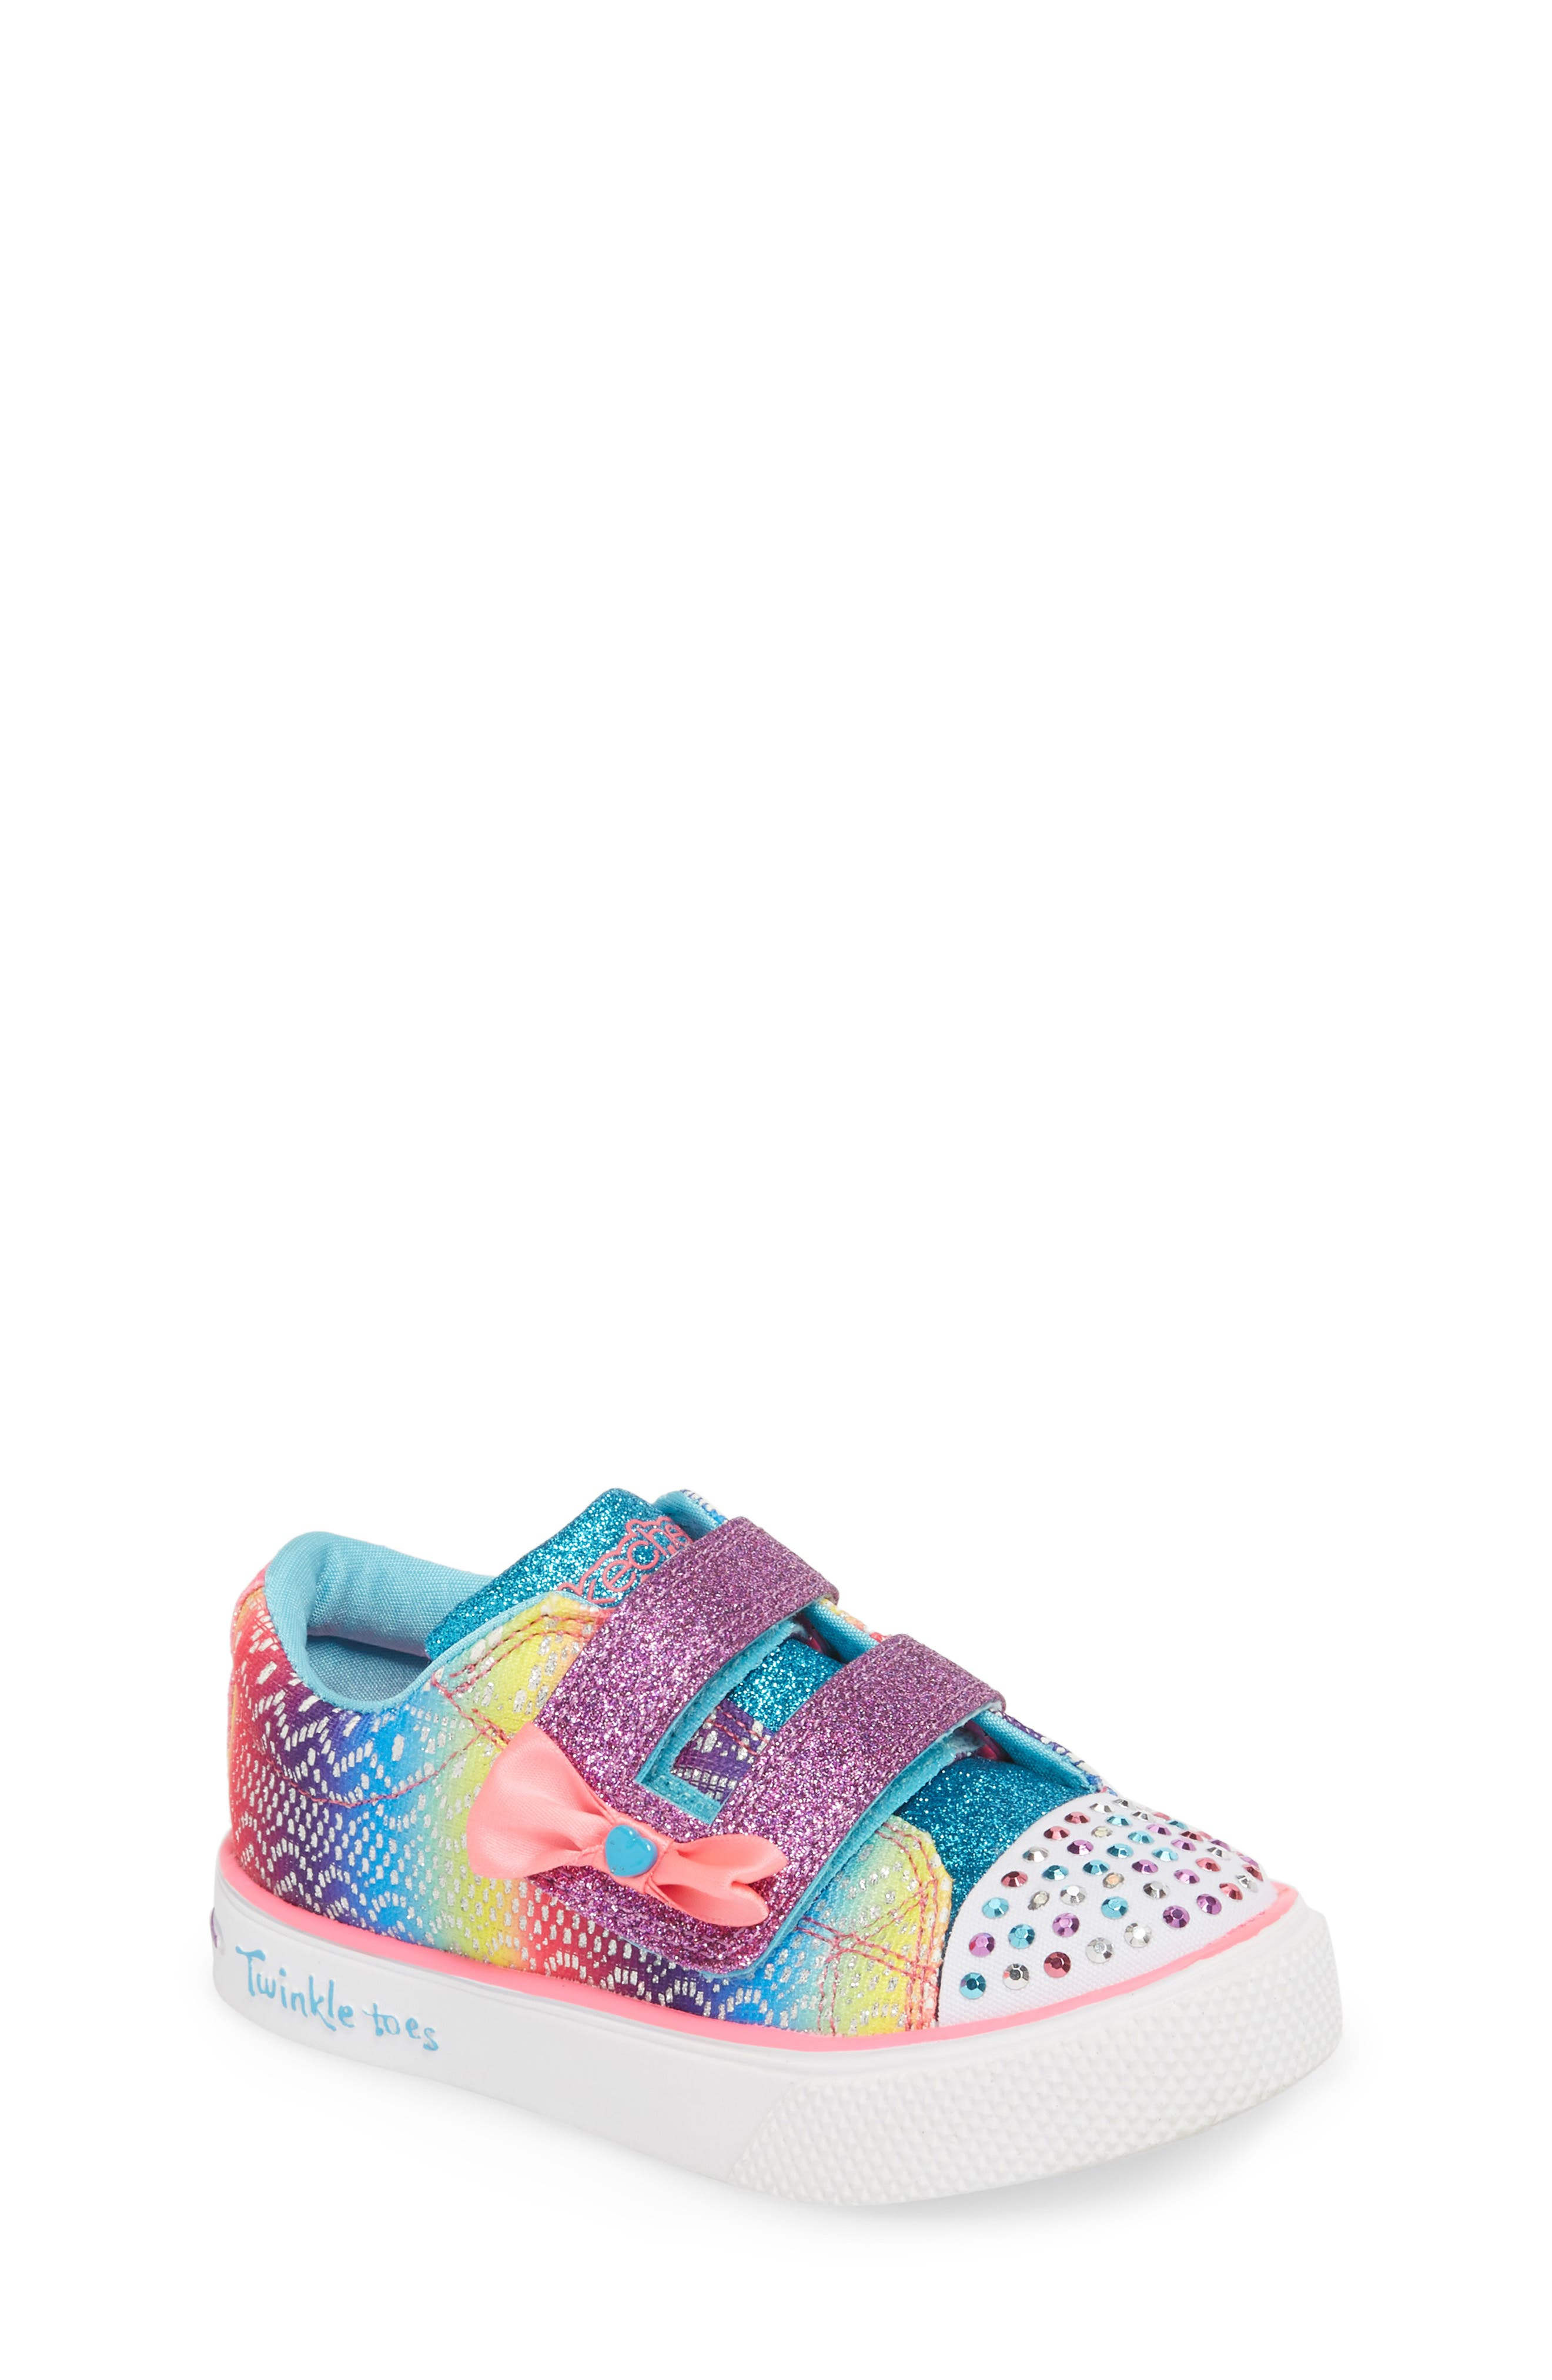 Twinkle Toes Breeze 2.0 Light-Up Sneaker,                             Main thumbnail 1, color,                             650